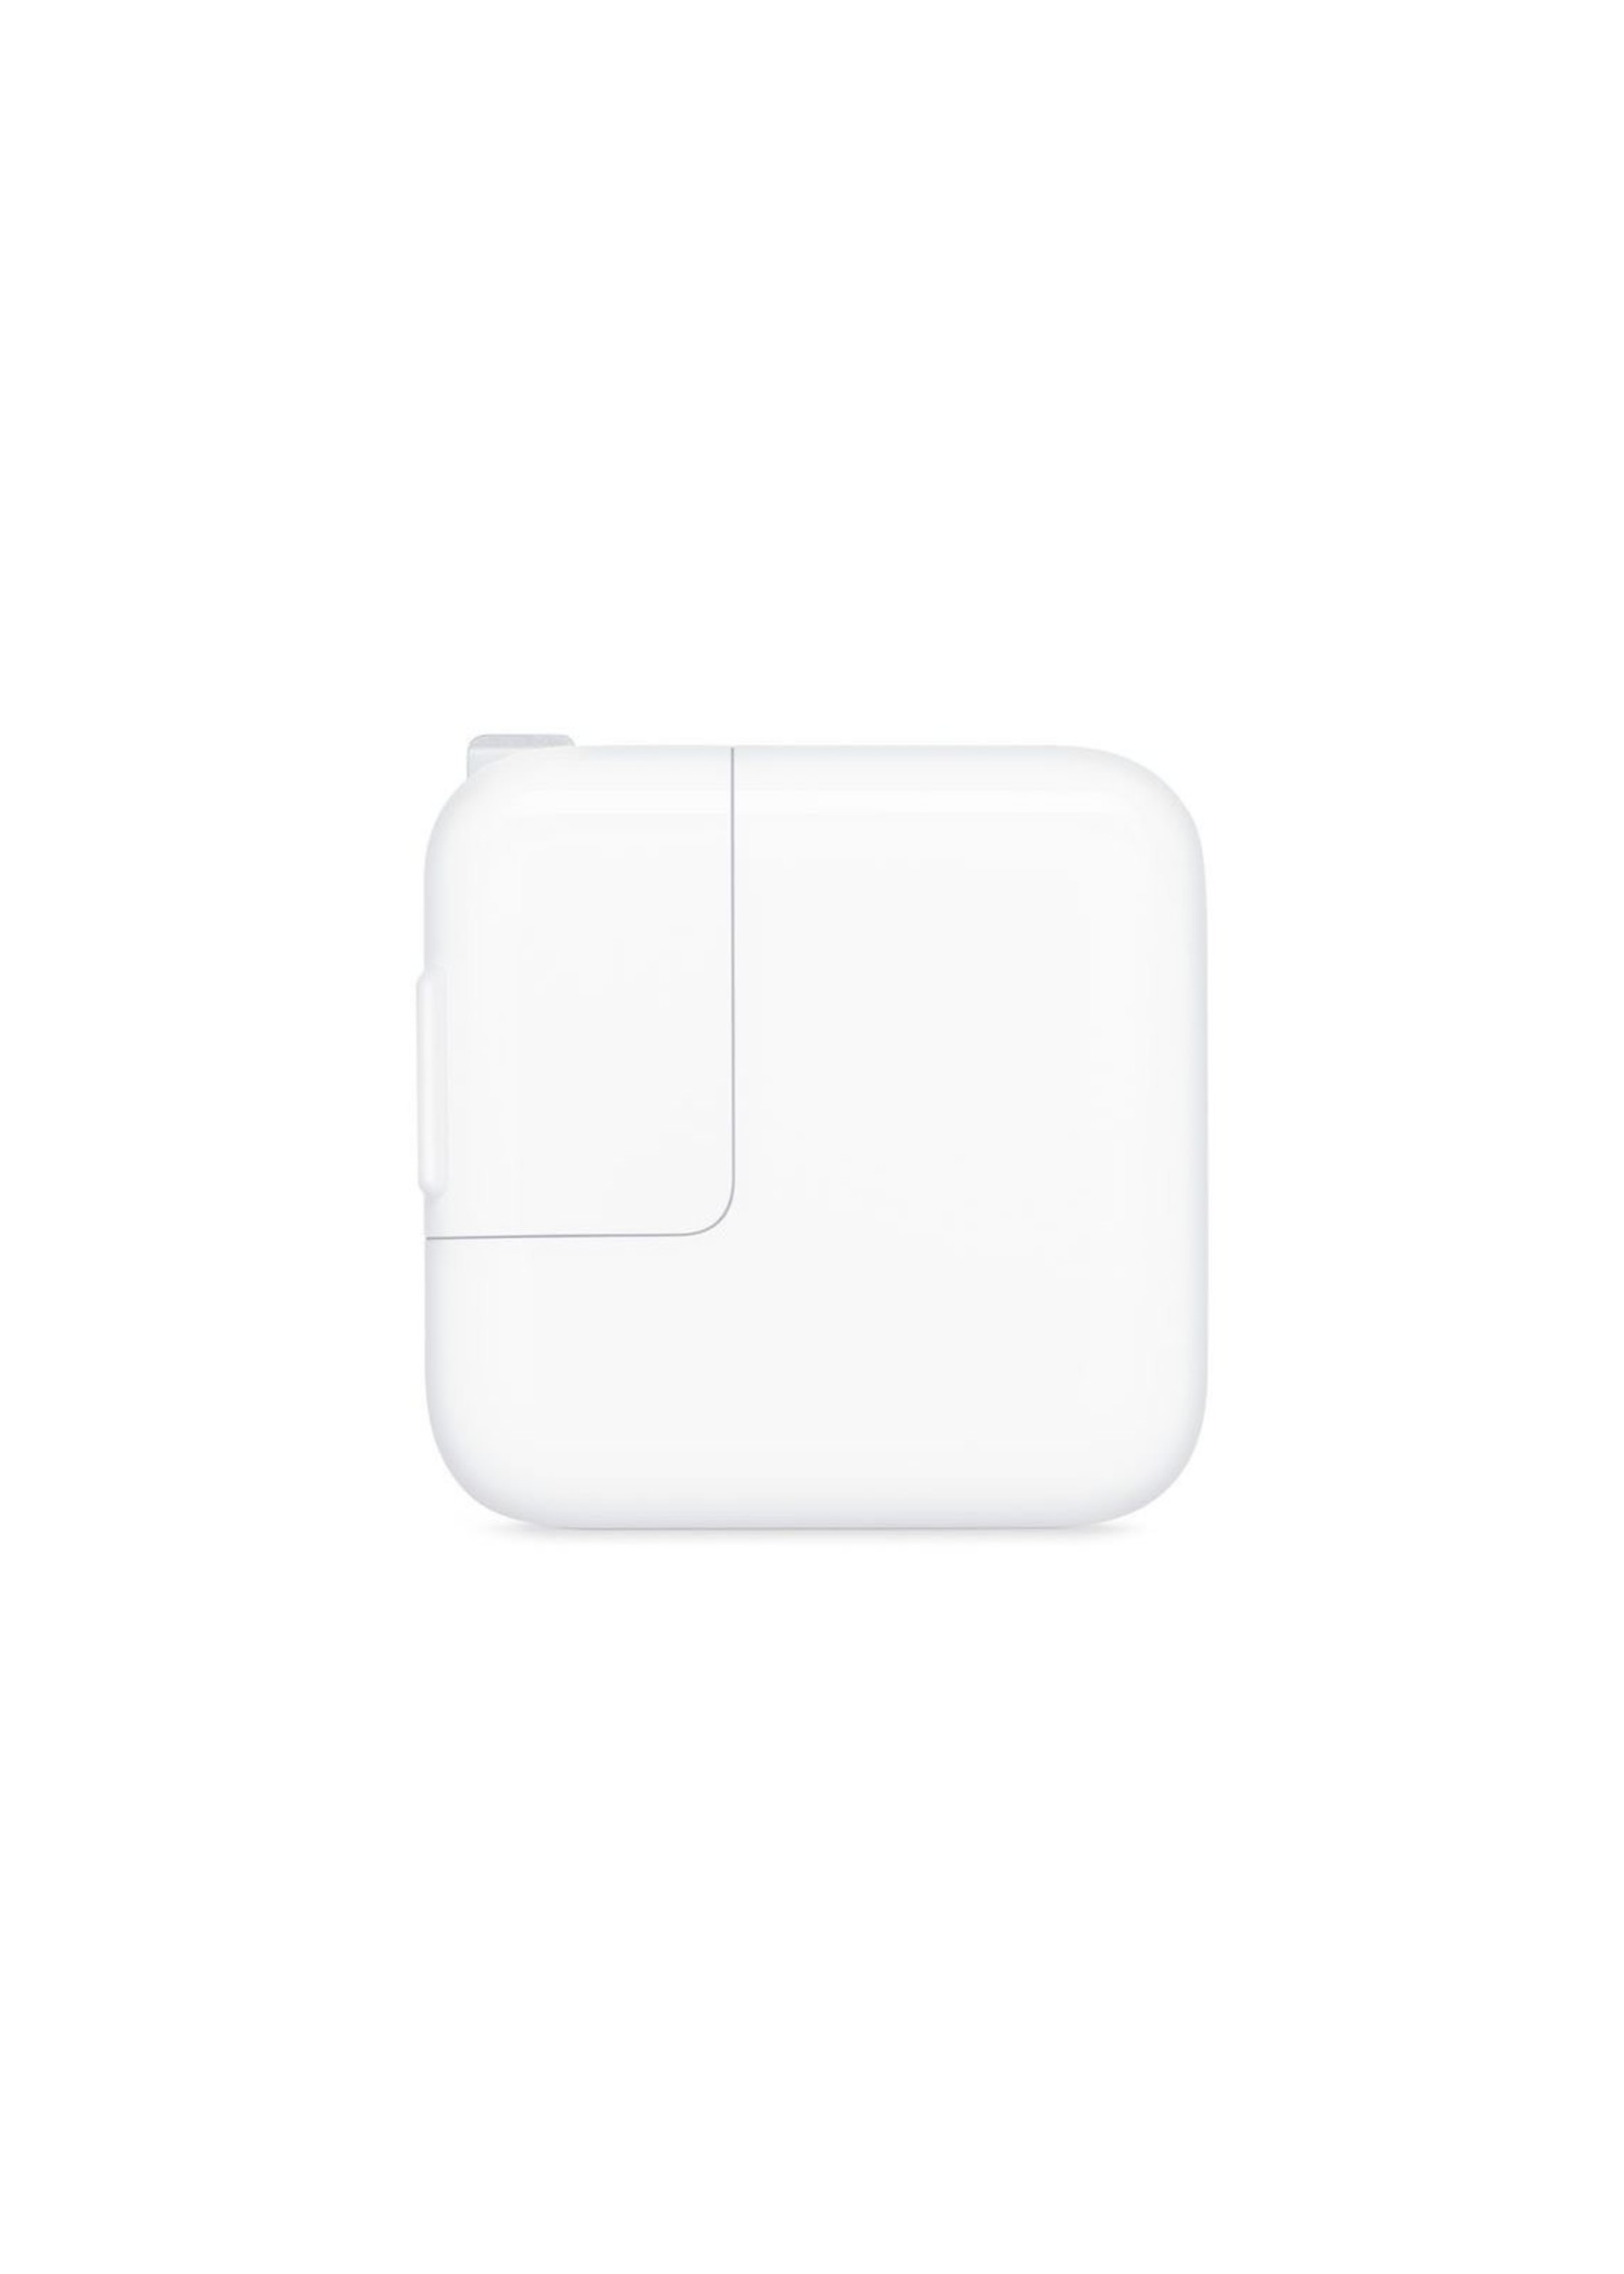 Apple 12W USB Power Adapter - OLD